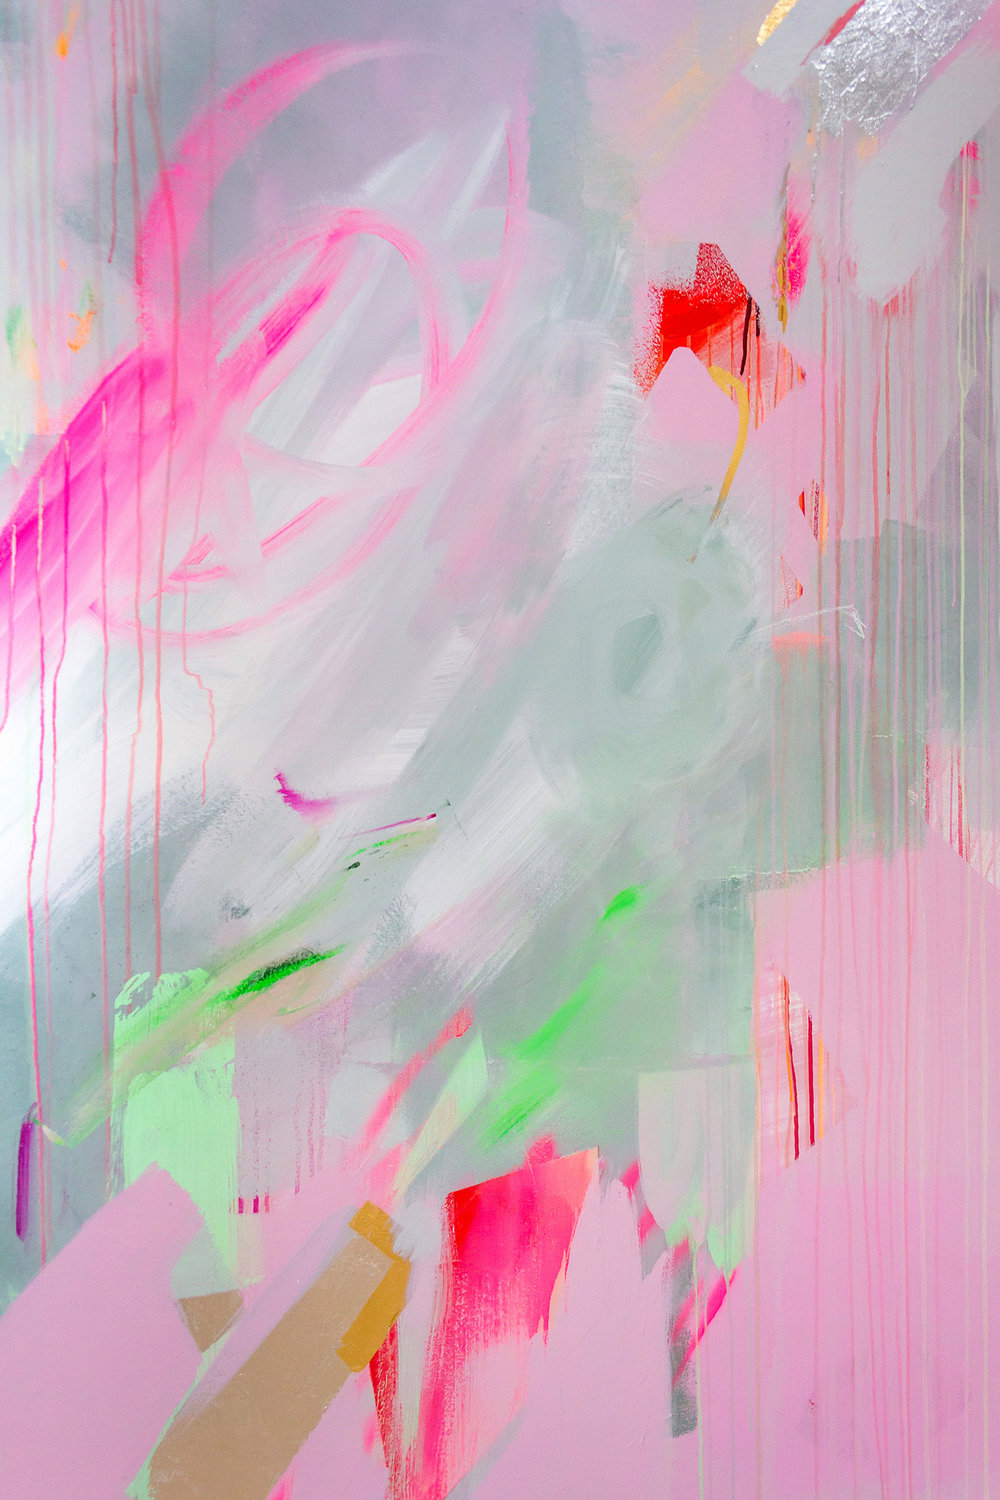 Vibrant abstract mural in pink, green and pastel colours, the energetic brushstrokes resemble a large butterfly.